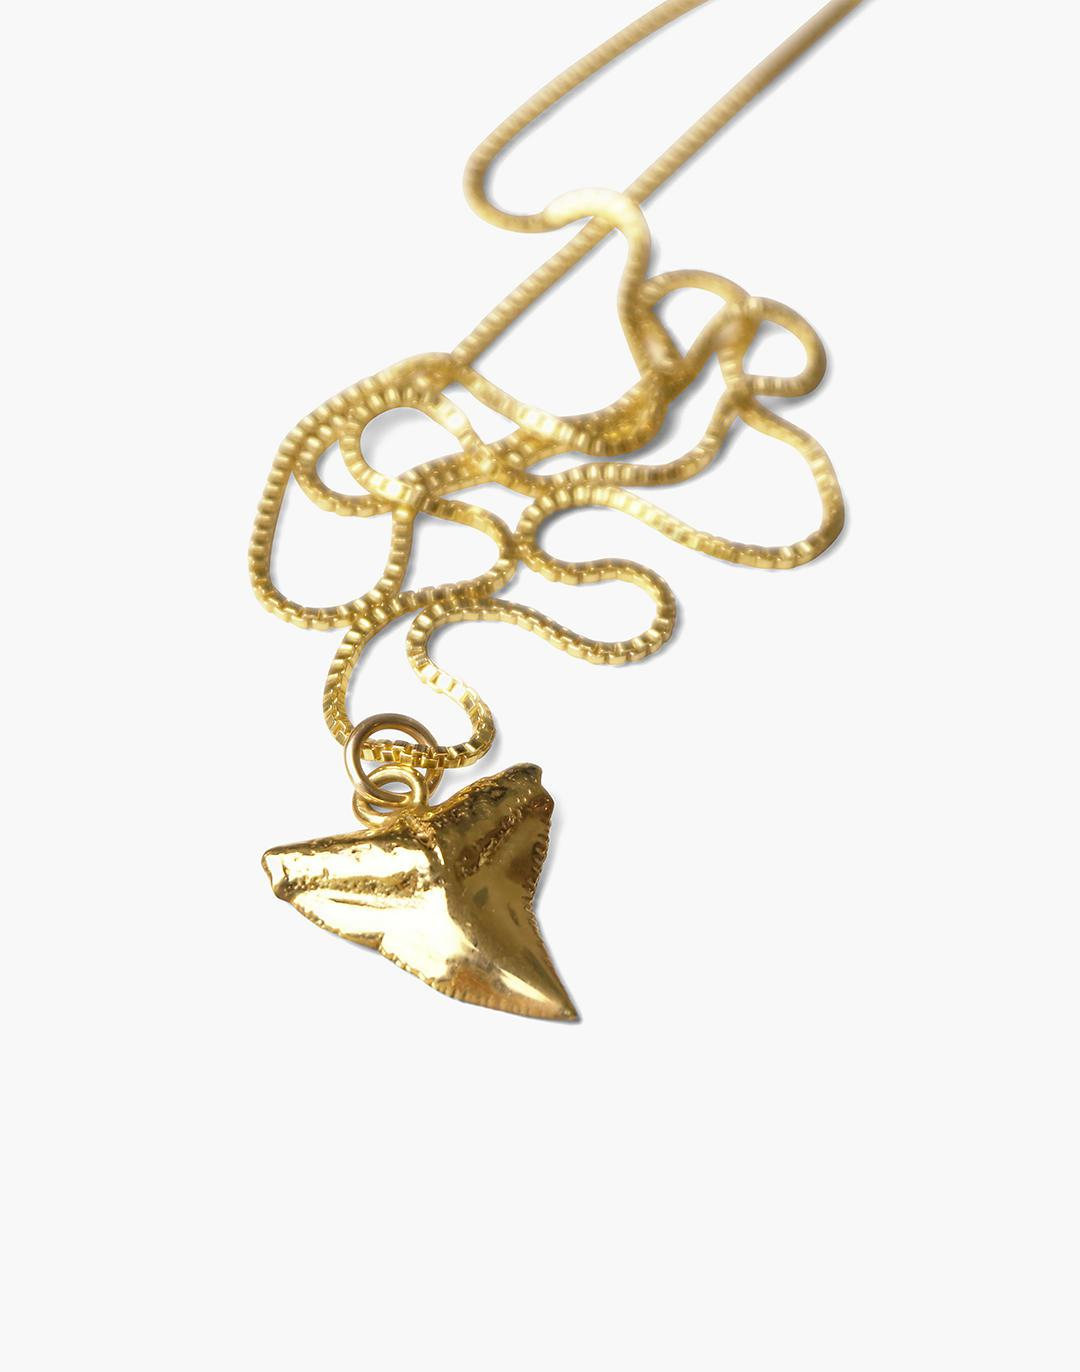 Charlotte Cauwe Studio Shark Tooth Necklace in Gold